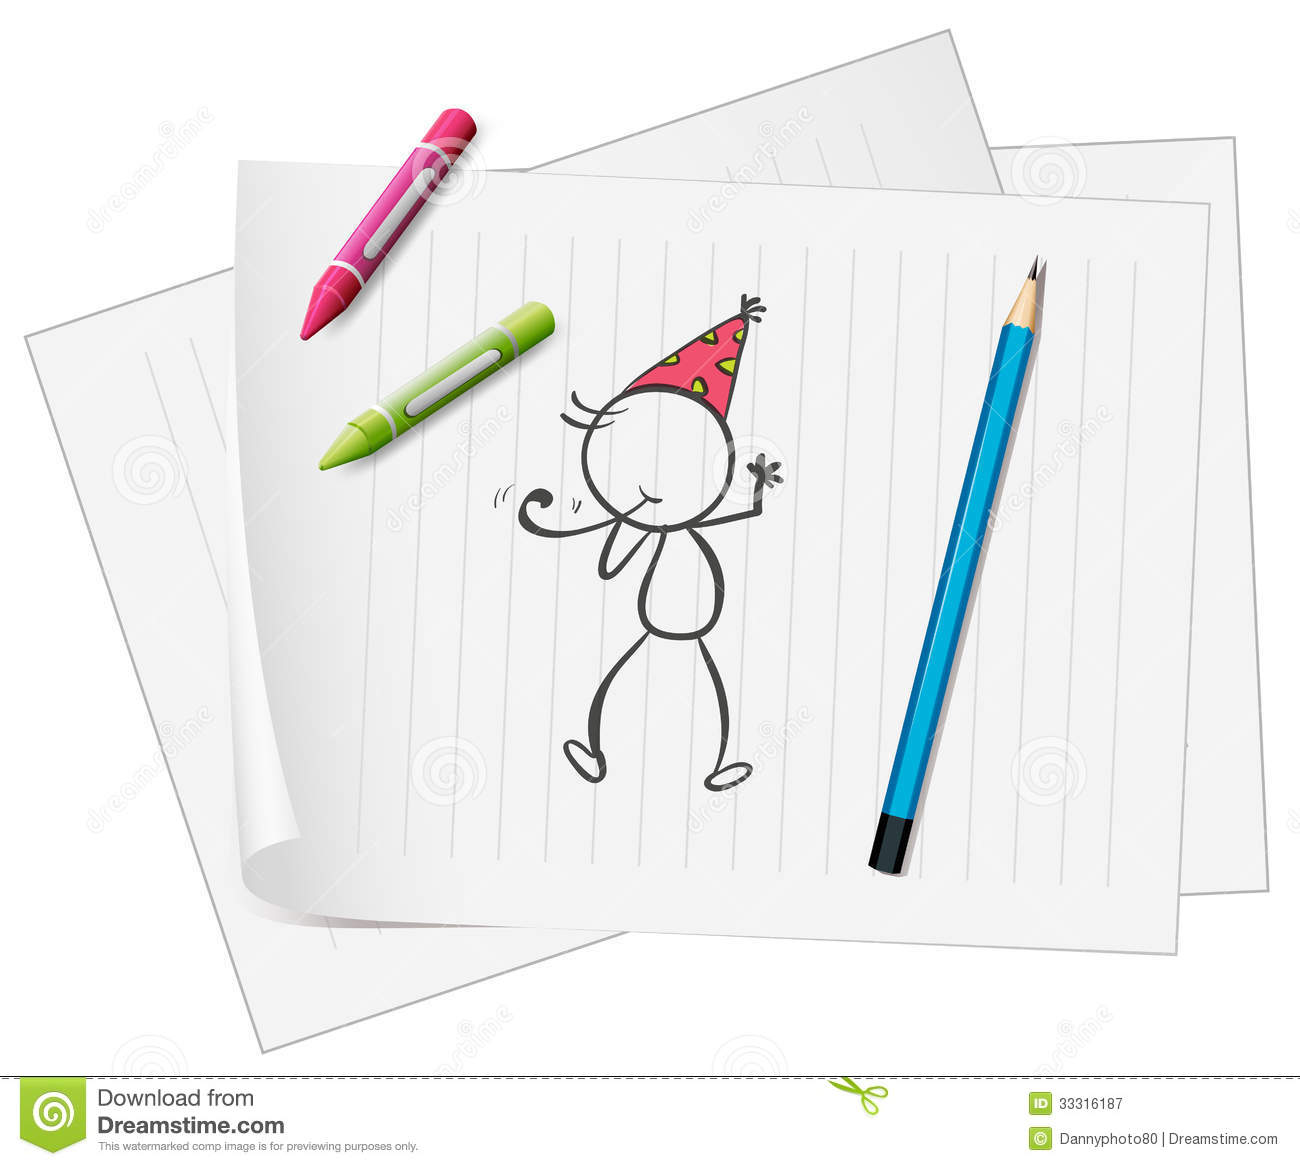 A Paper With A Sketch Of A Person With Crayons And A